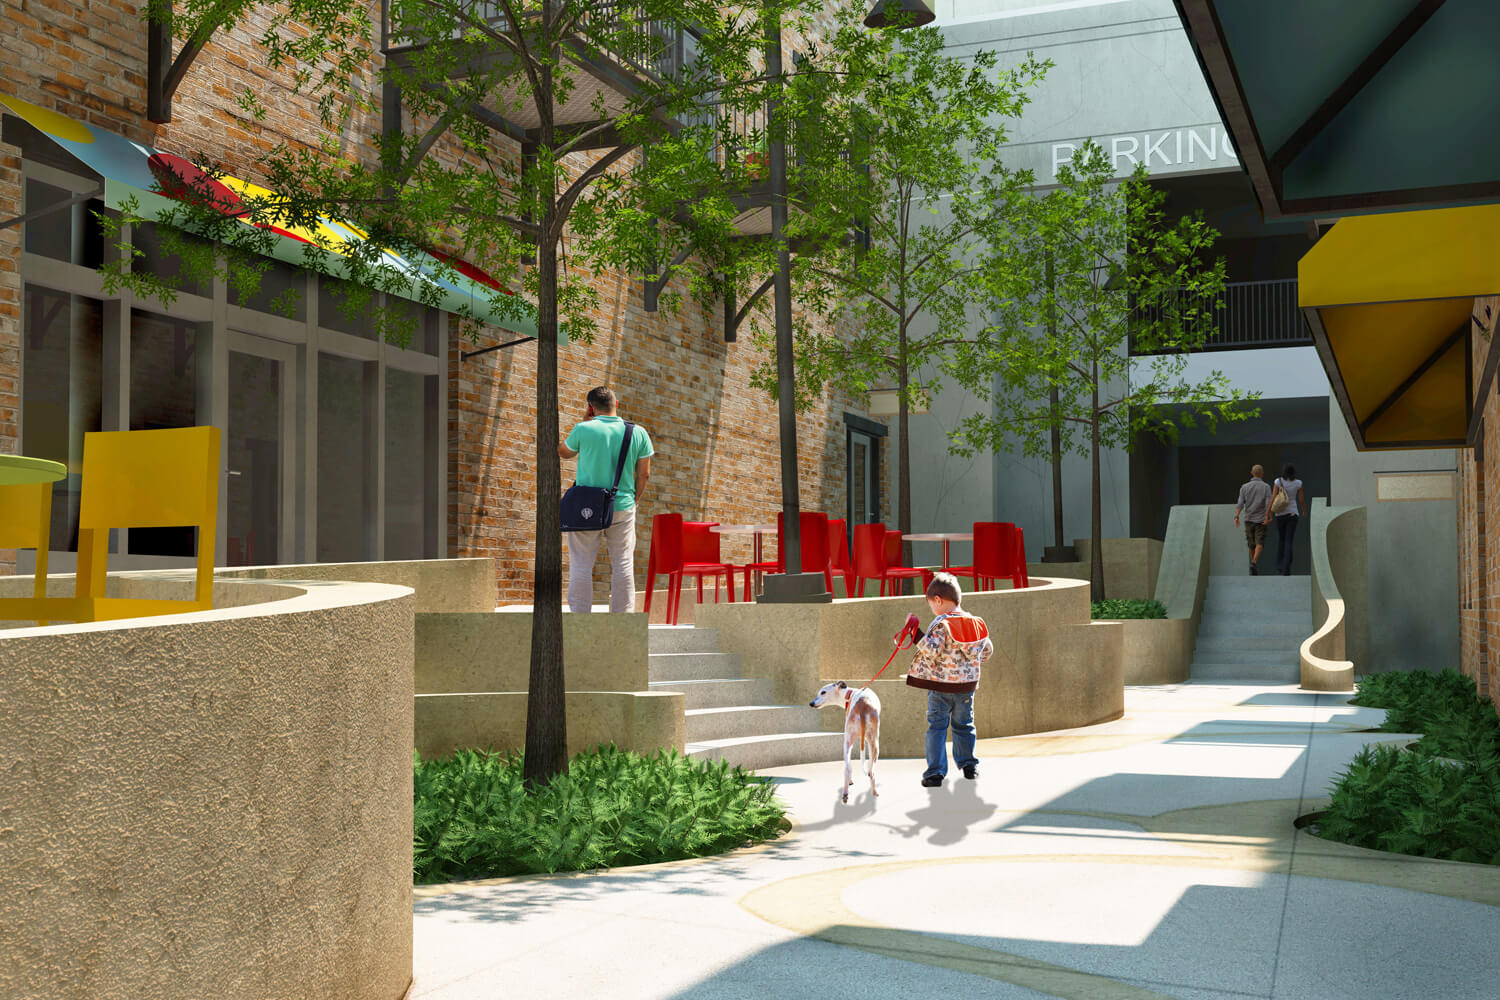 Dexter Alley Park Designed by Foshee Architecture - Exterior View at Center Steps